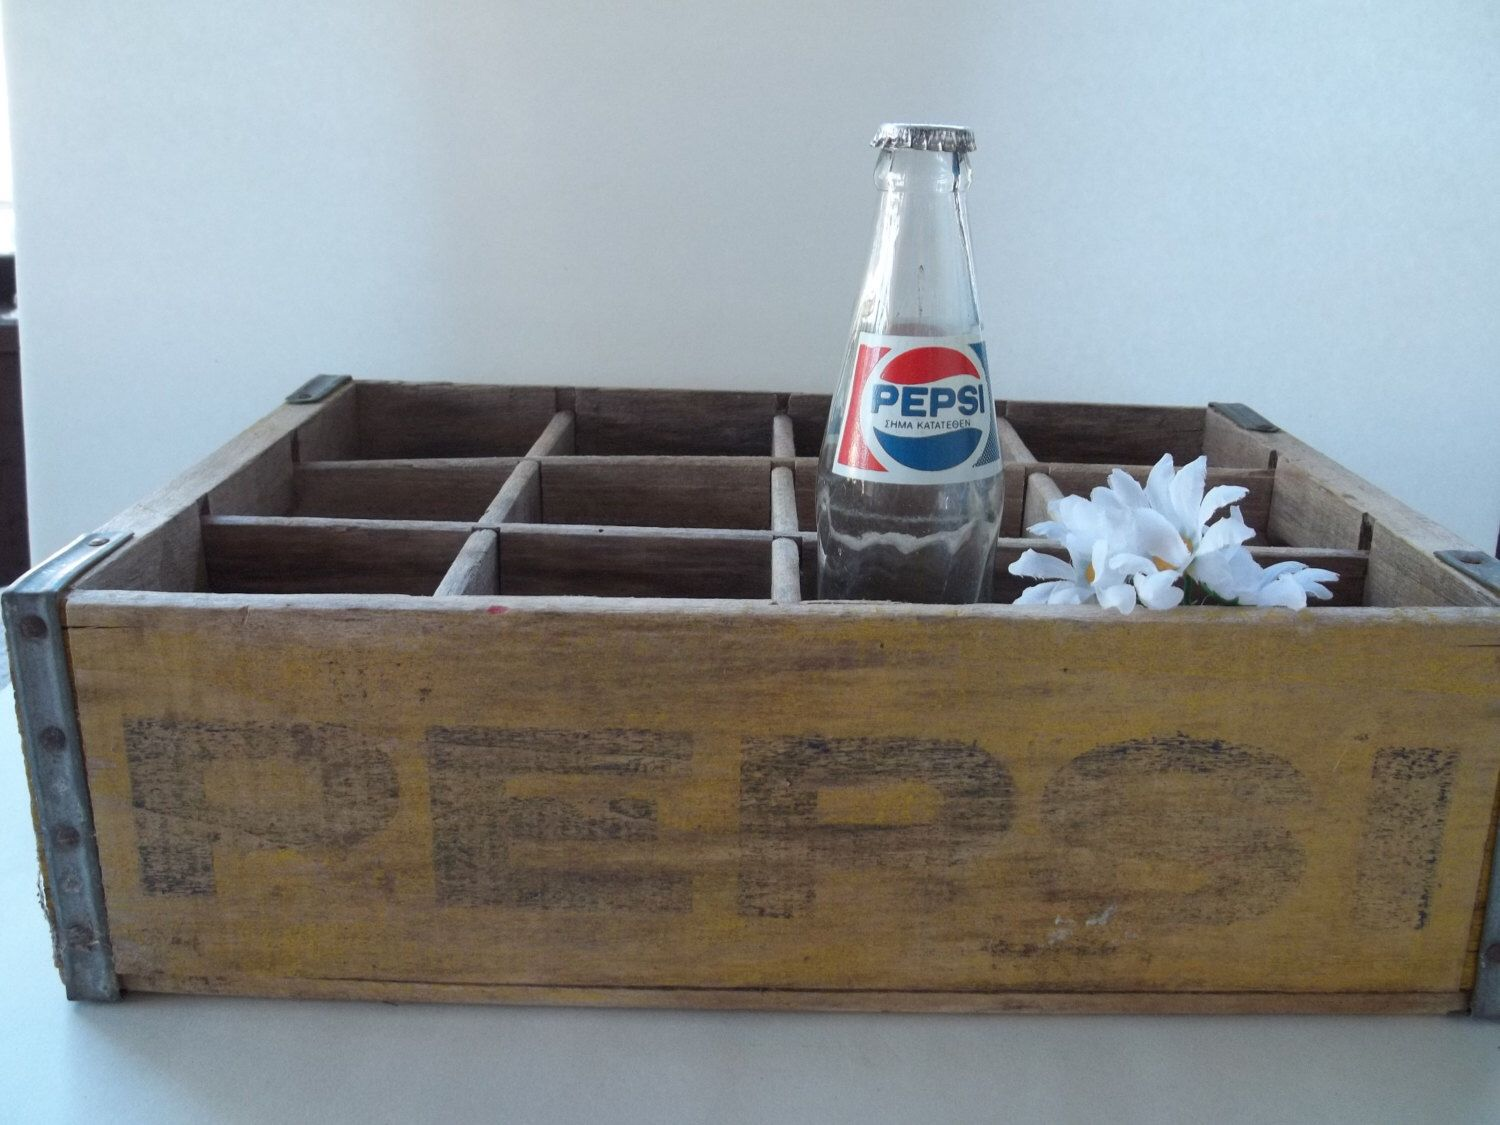 Pepsi Crate~~Wooden~Holds 12~~~Weathered and Rustic by MemoriesAmore on Etsy https://www.etsy.com/listing/240148462/pepsi-cratewoodenholds-12weathered-and